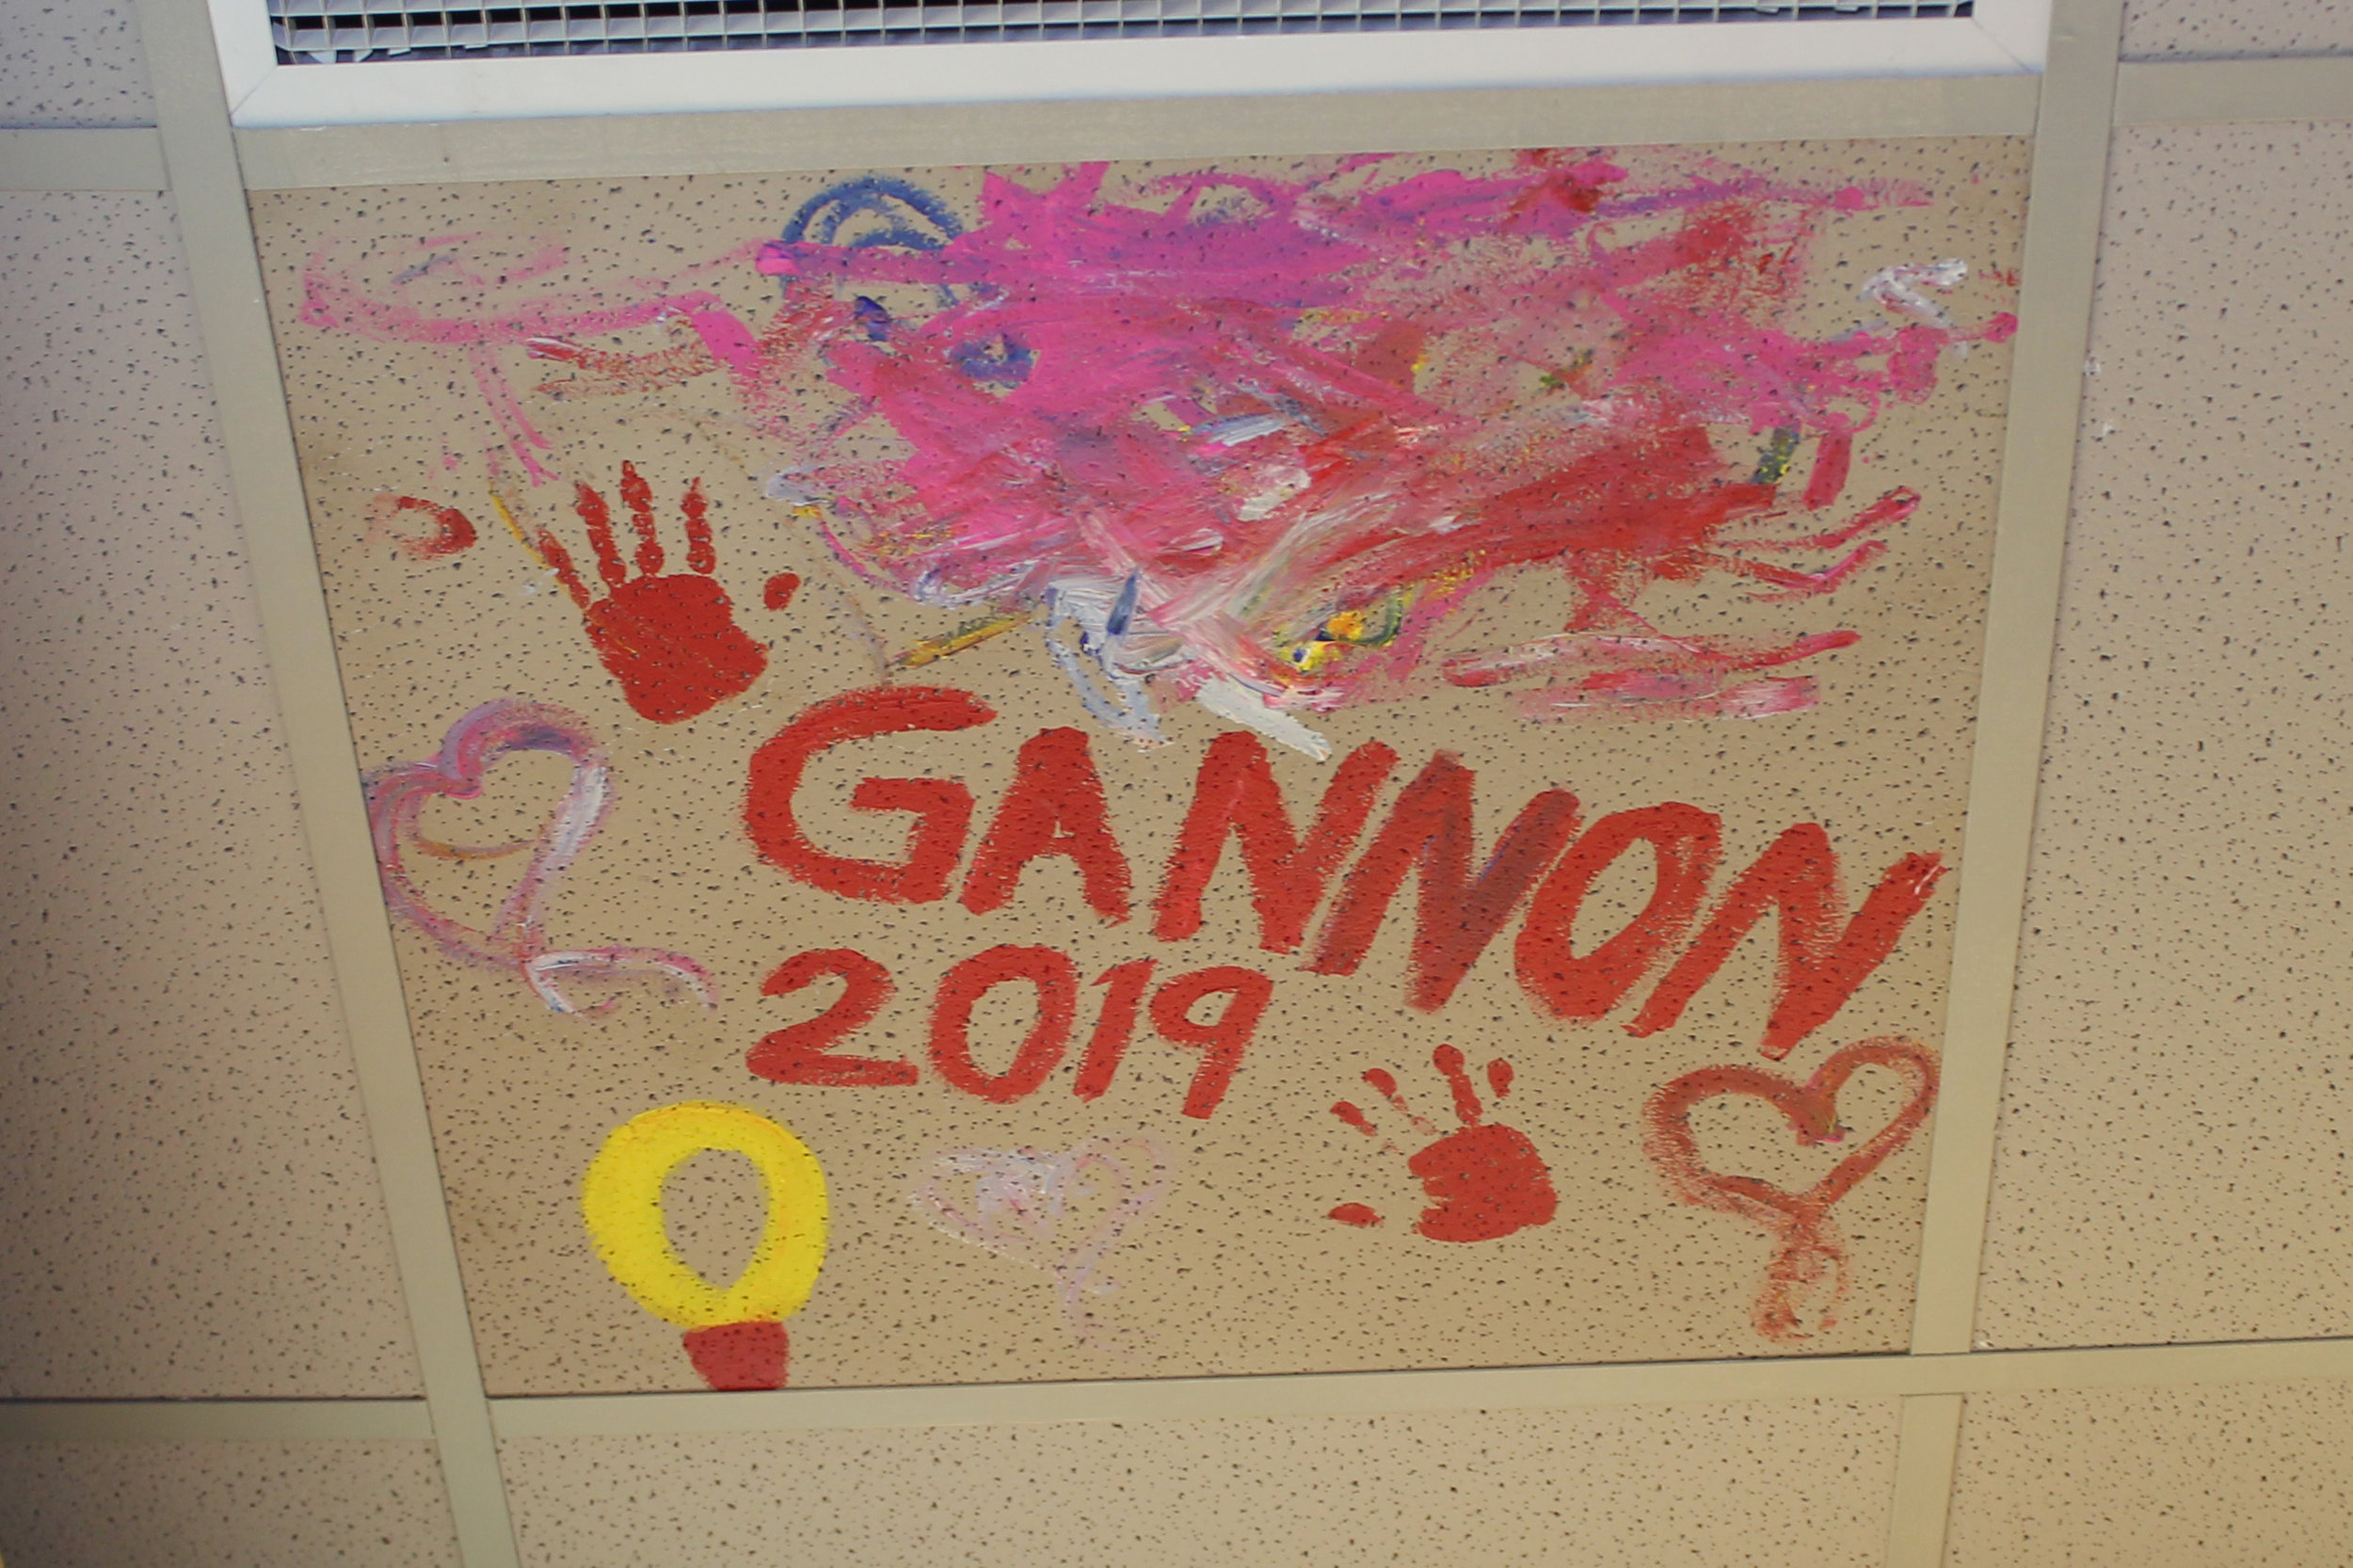 Gannon's final artwork at DQ